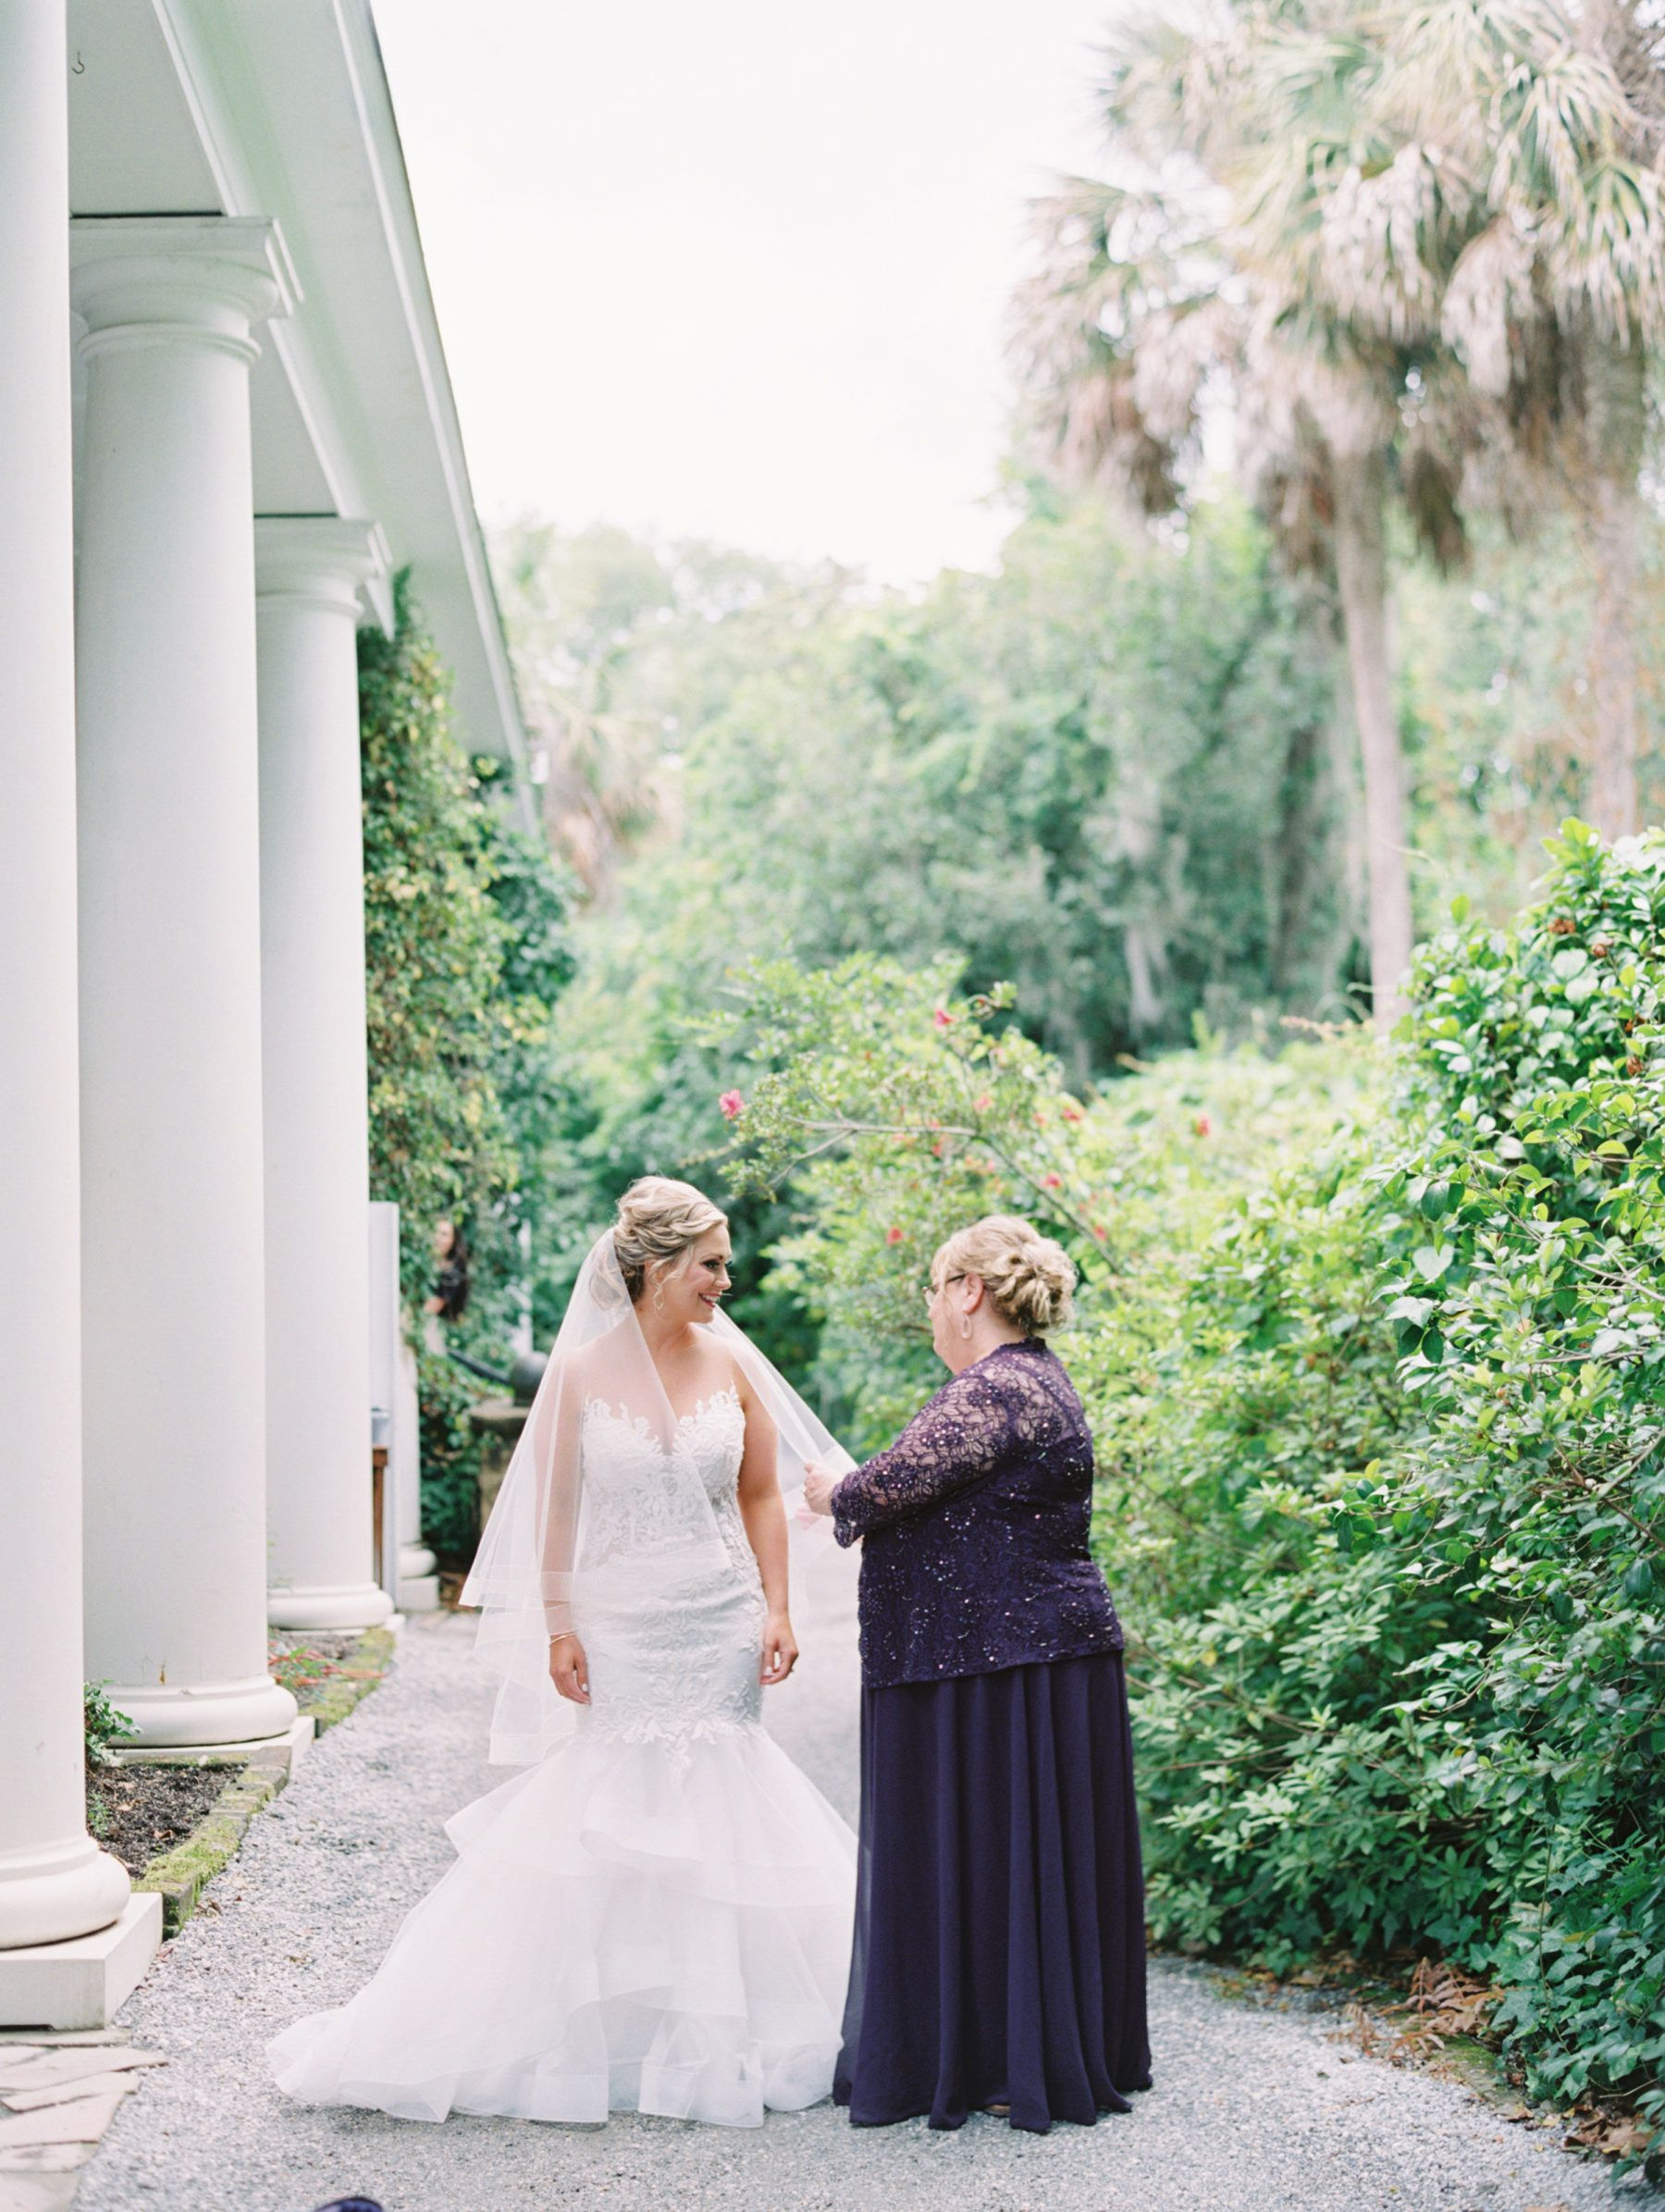 Intimate Southern Wedding at Magnolia Plantation in